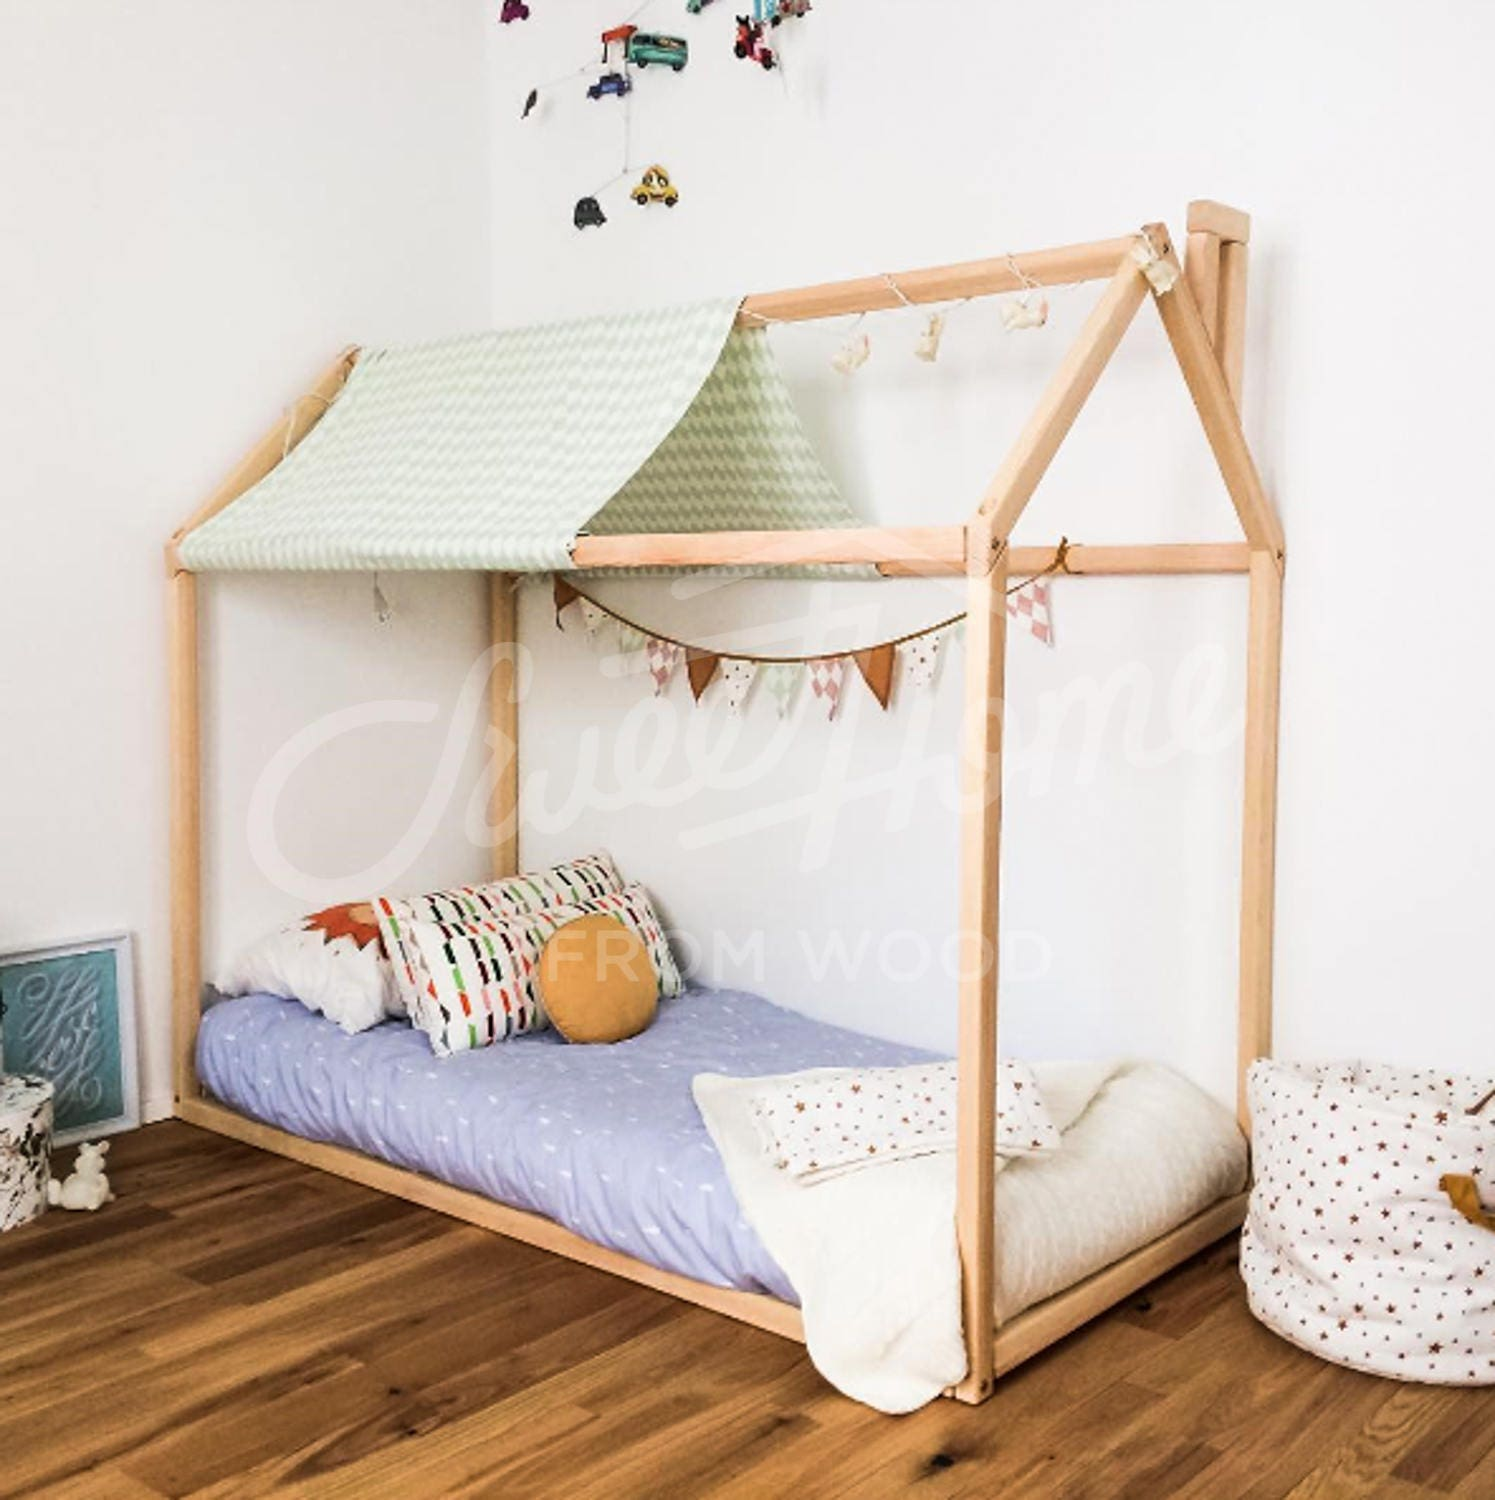 Toddler bed play house bed frame children bed bunk bed for Toddler bunk beds